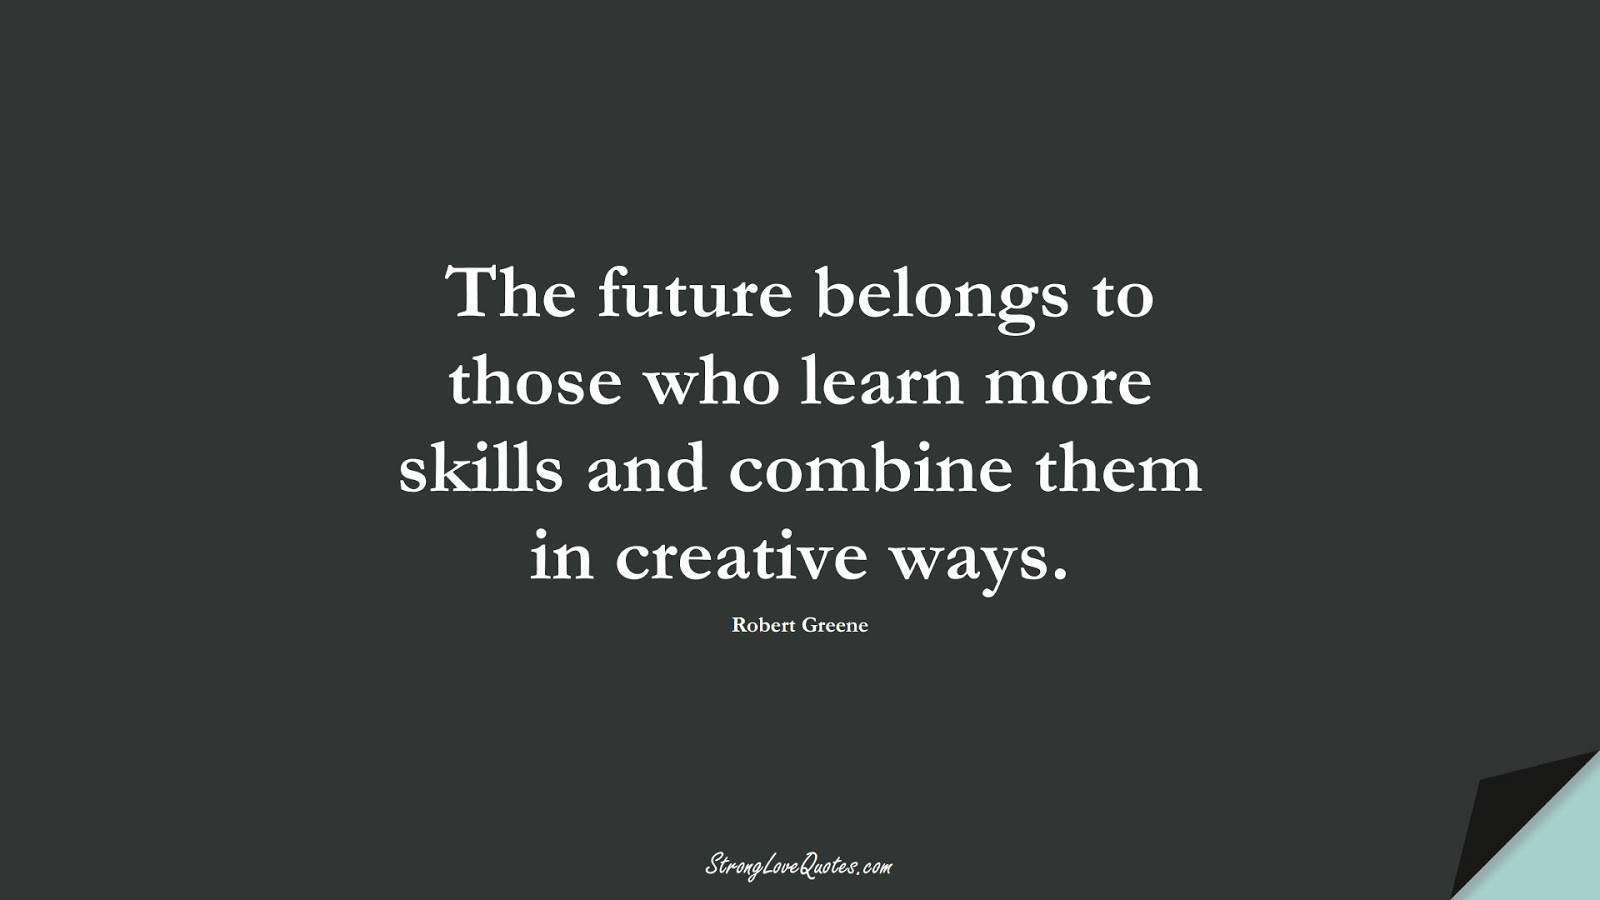 The future belongs to those who learn more skills and combine them in creative ways. (Robert Greene);  #KnowledgeQuotes